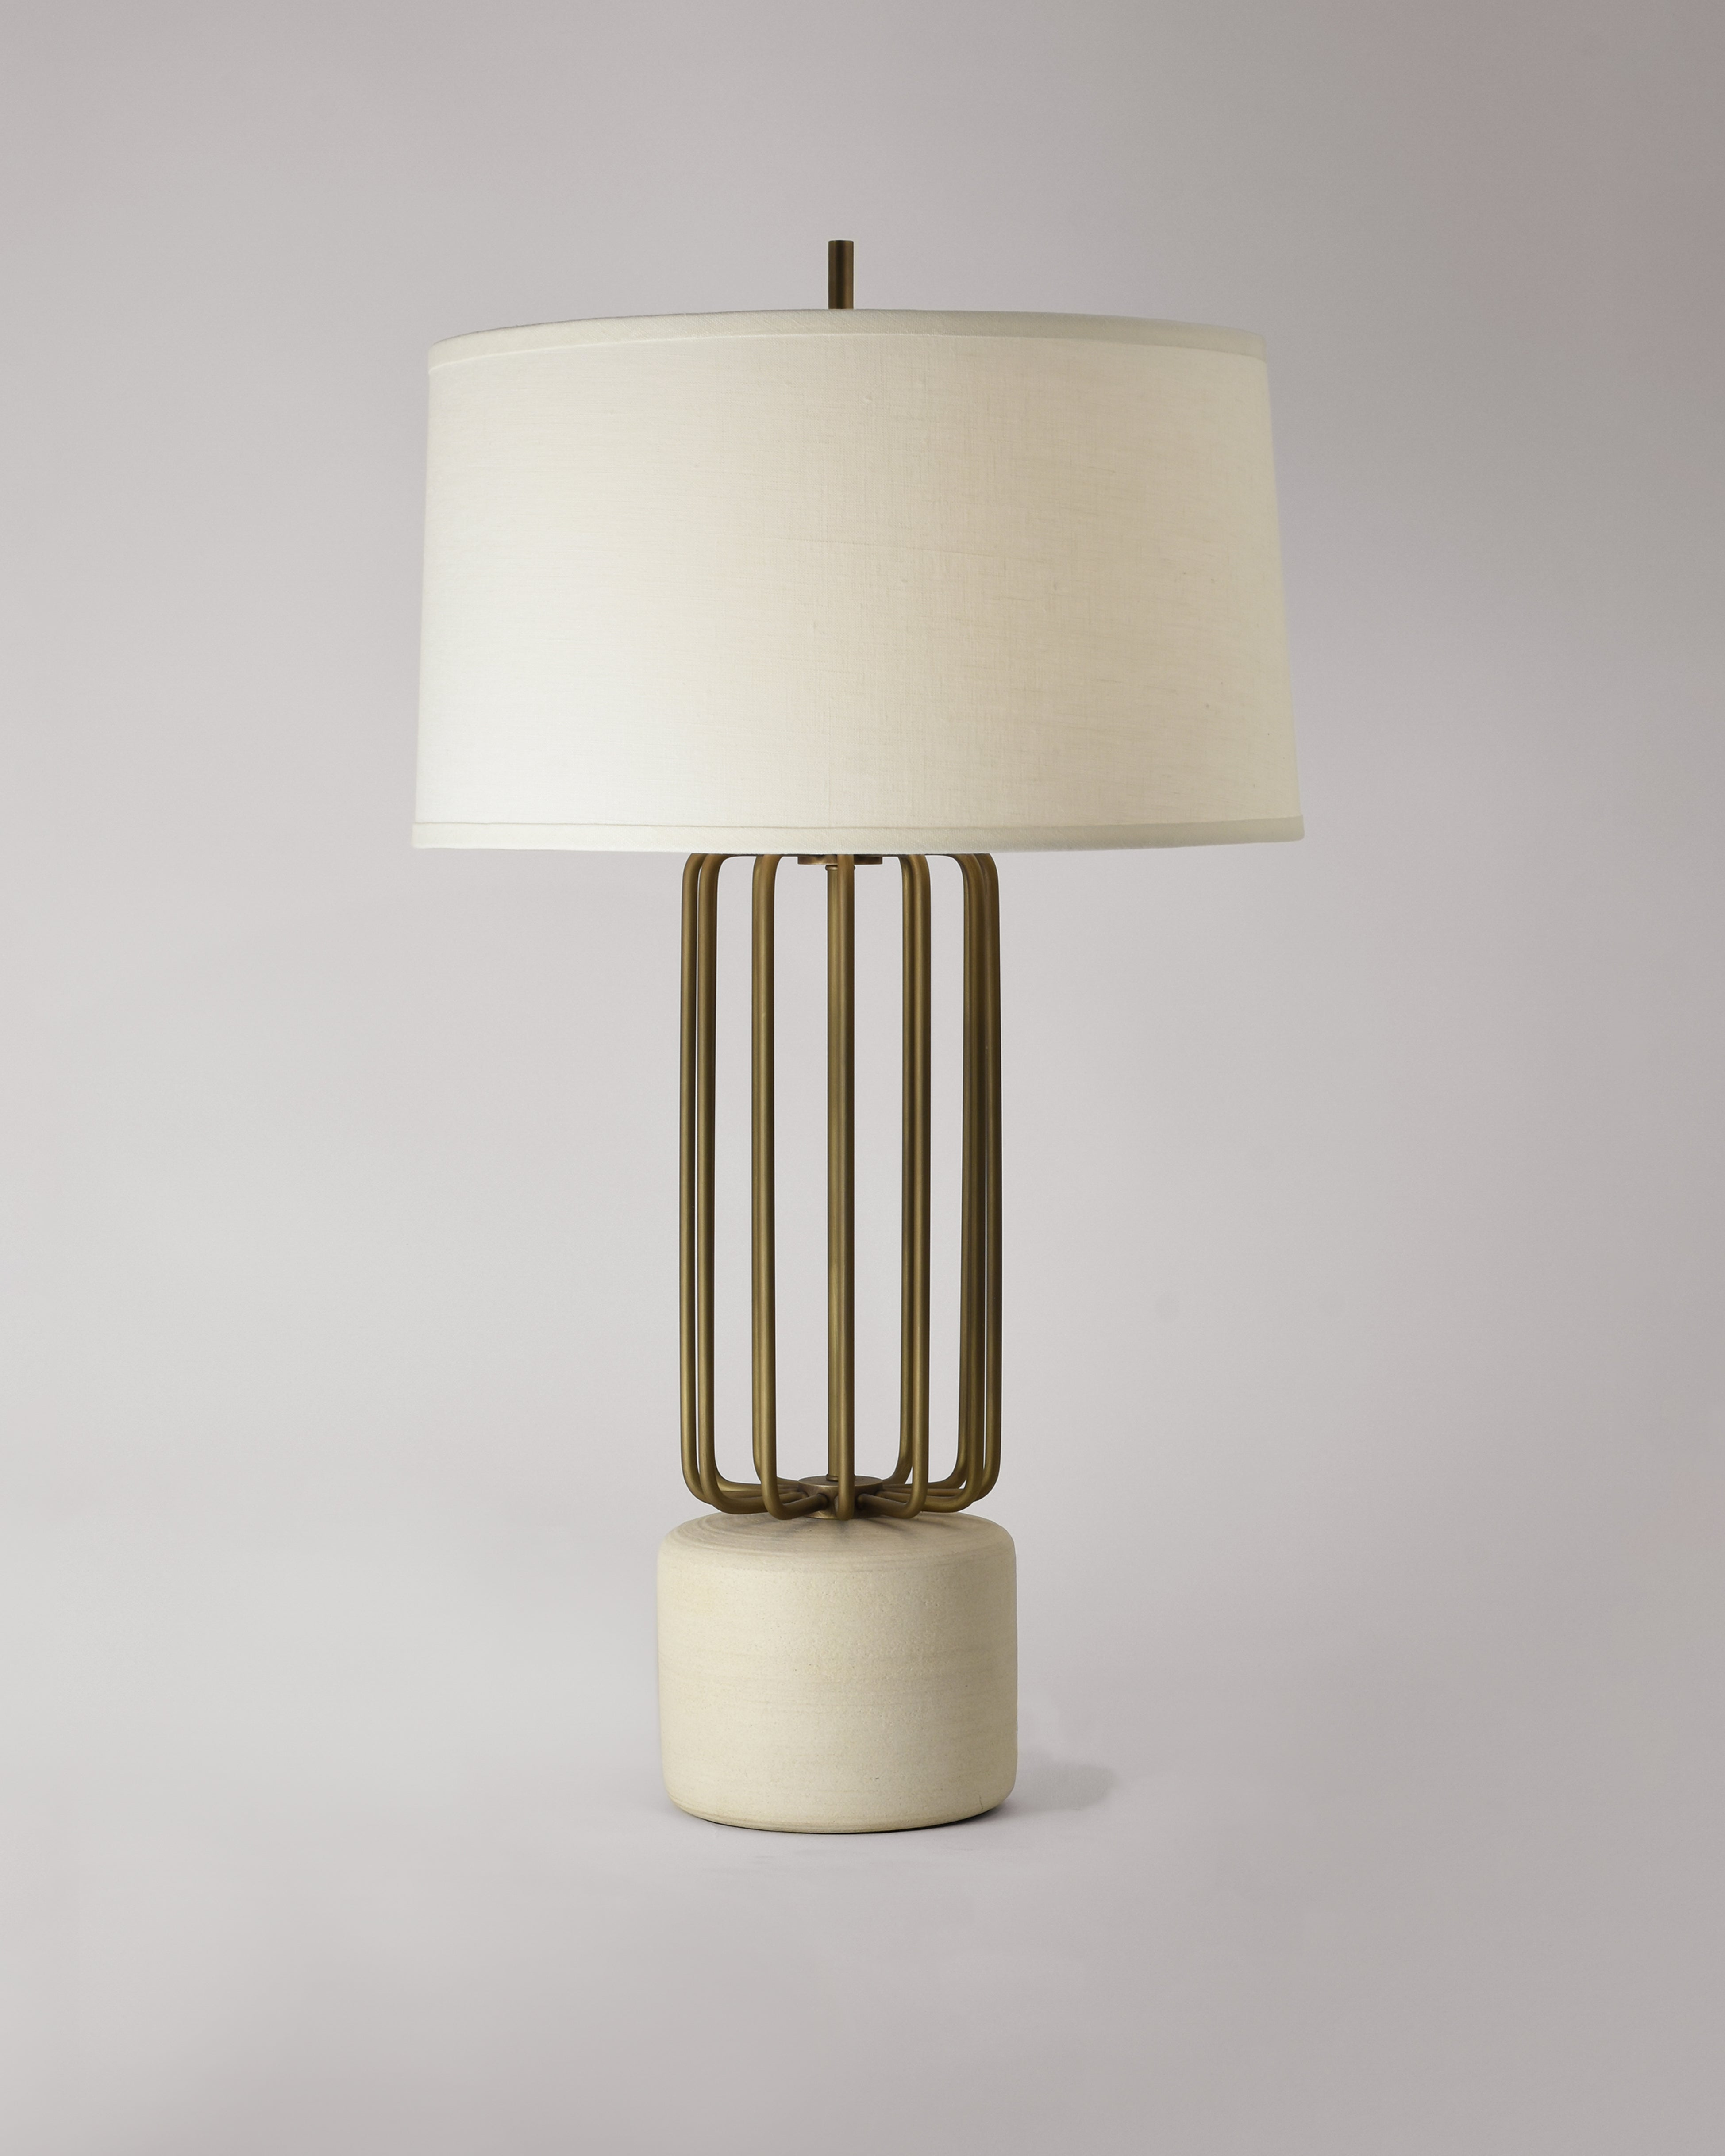 Light Antique Brass with Cashmere and White Linen